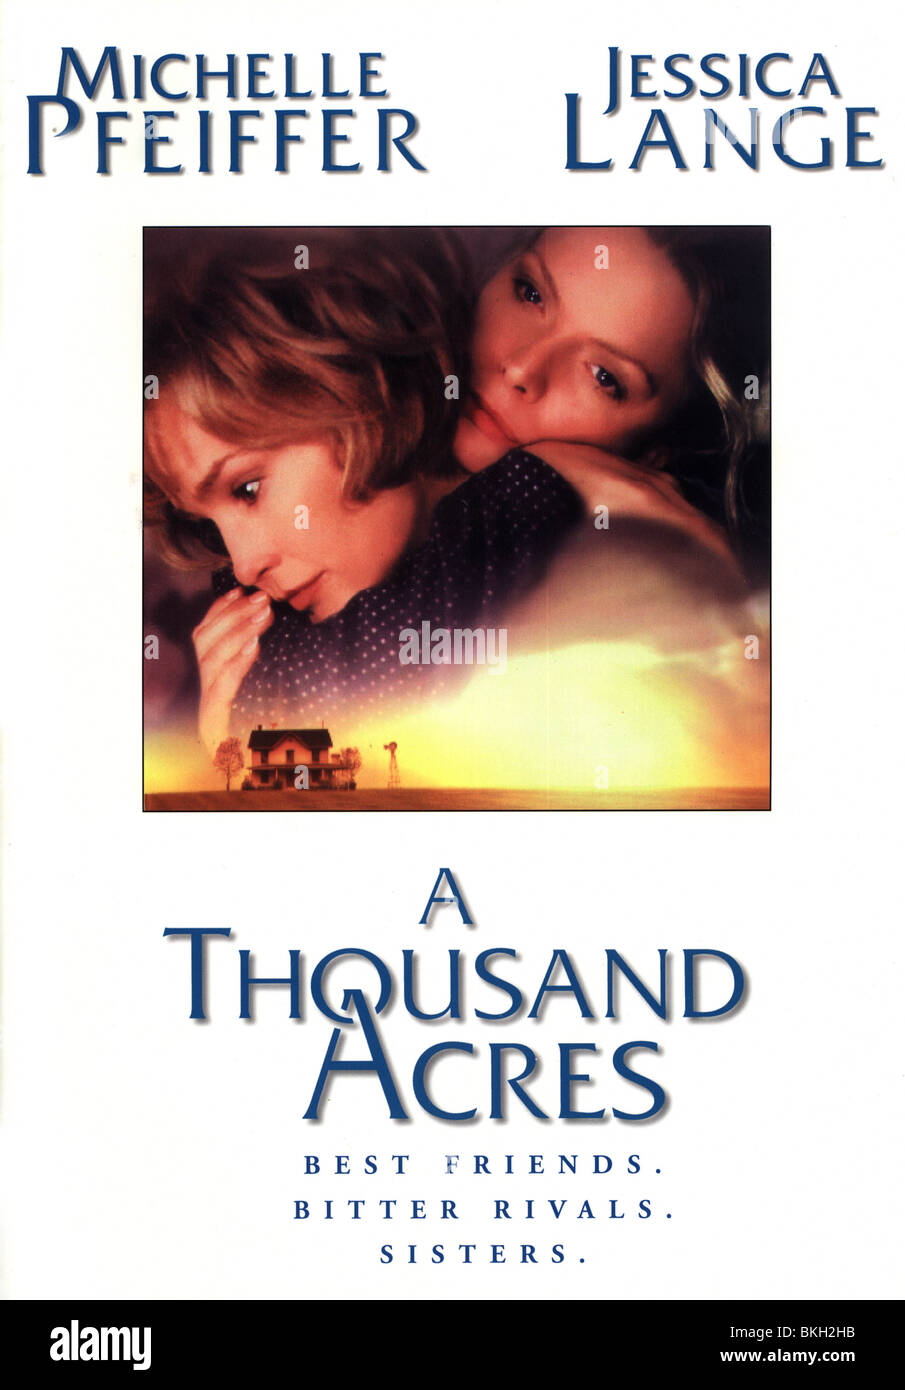 A THOUSAND ACRES 1997 1000 ALT POSTER THAC 001PP